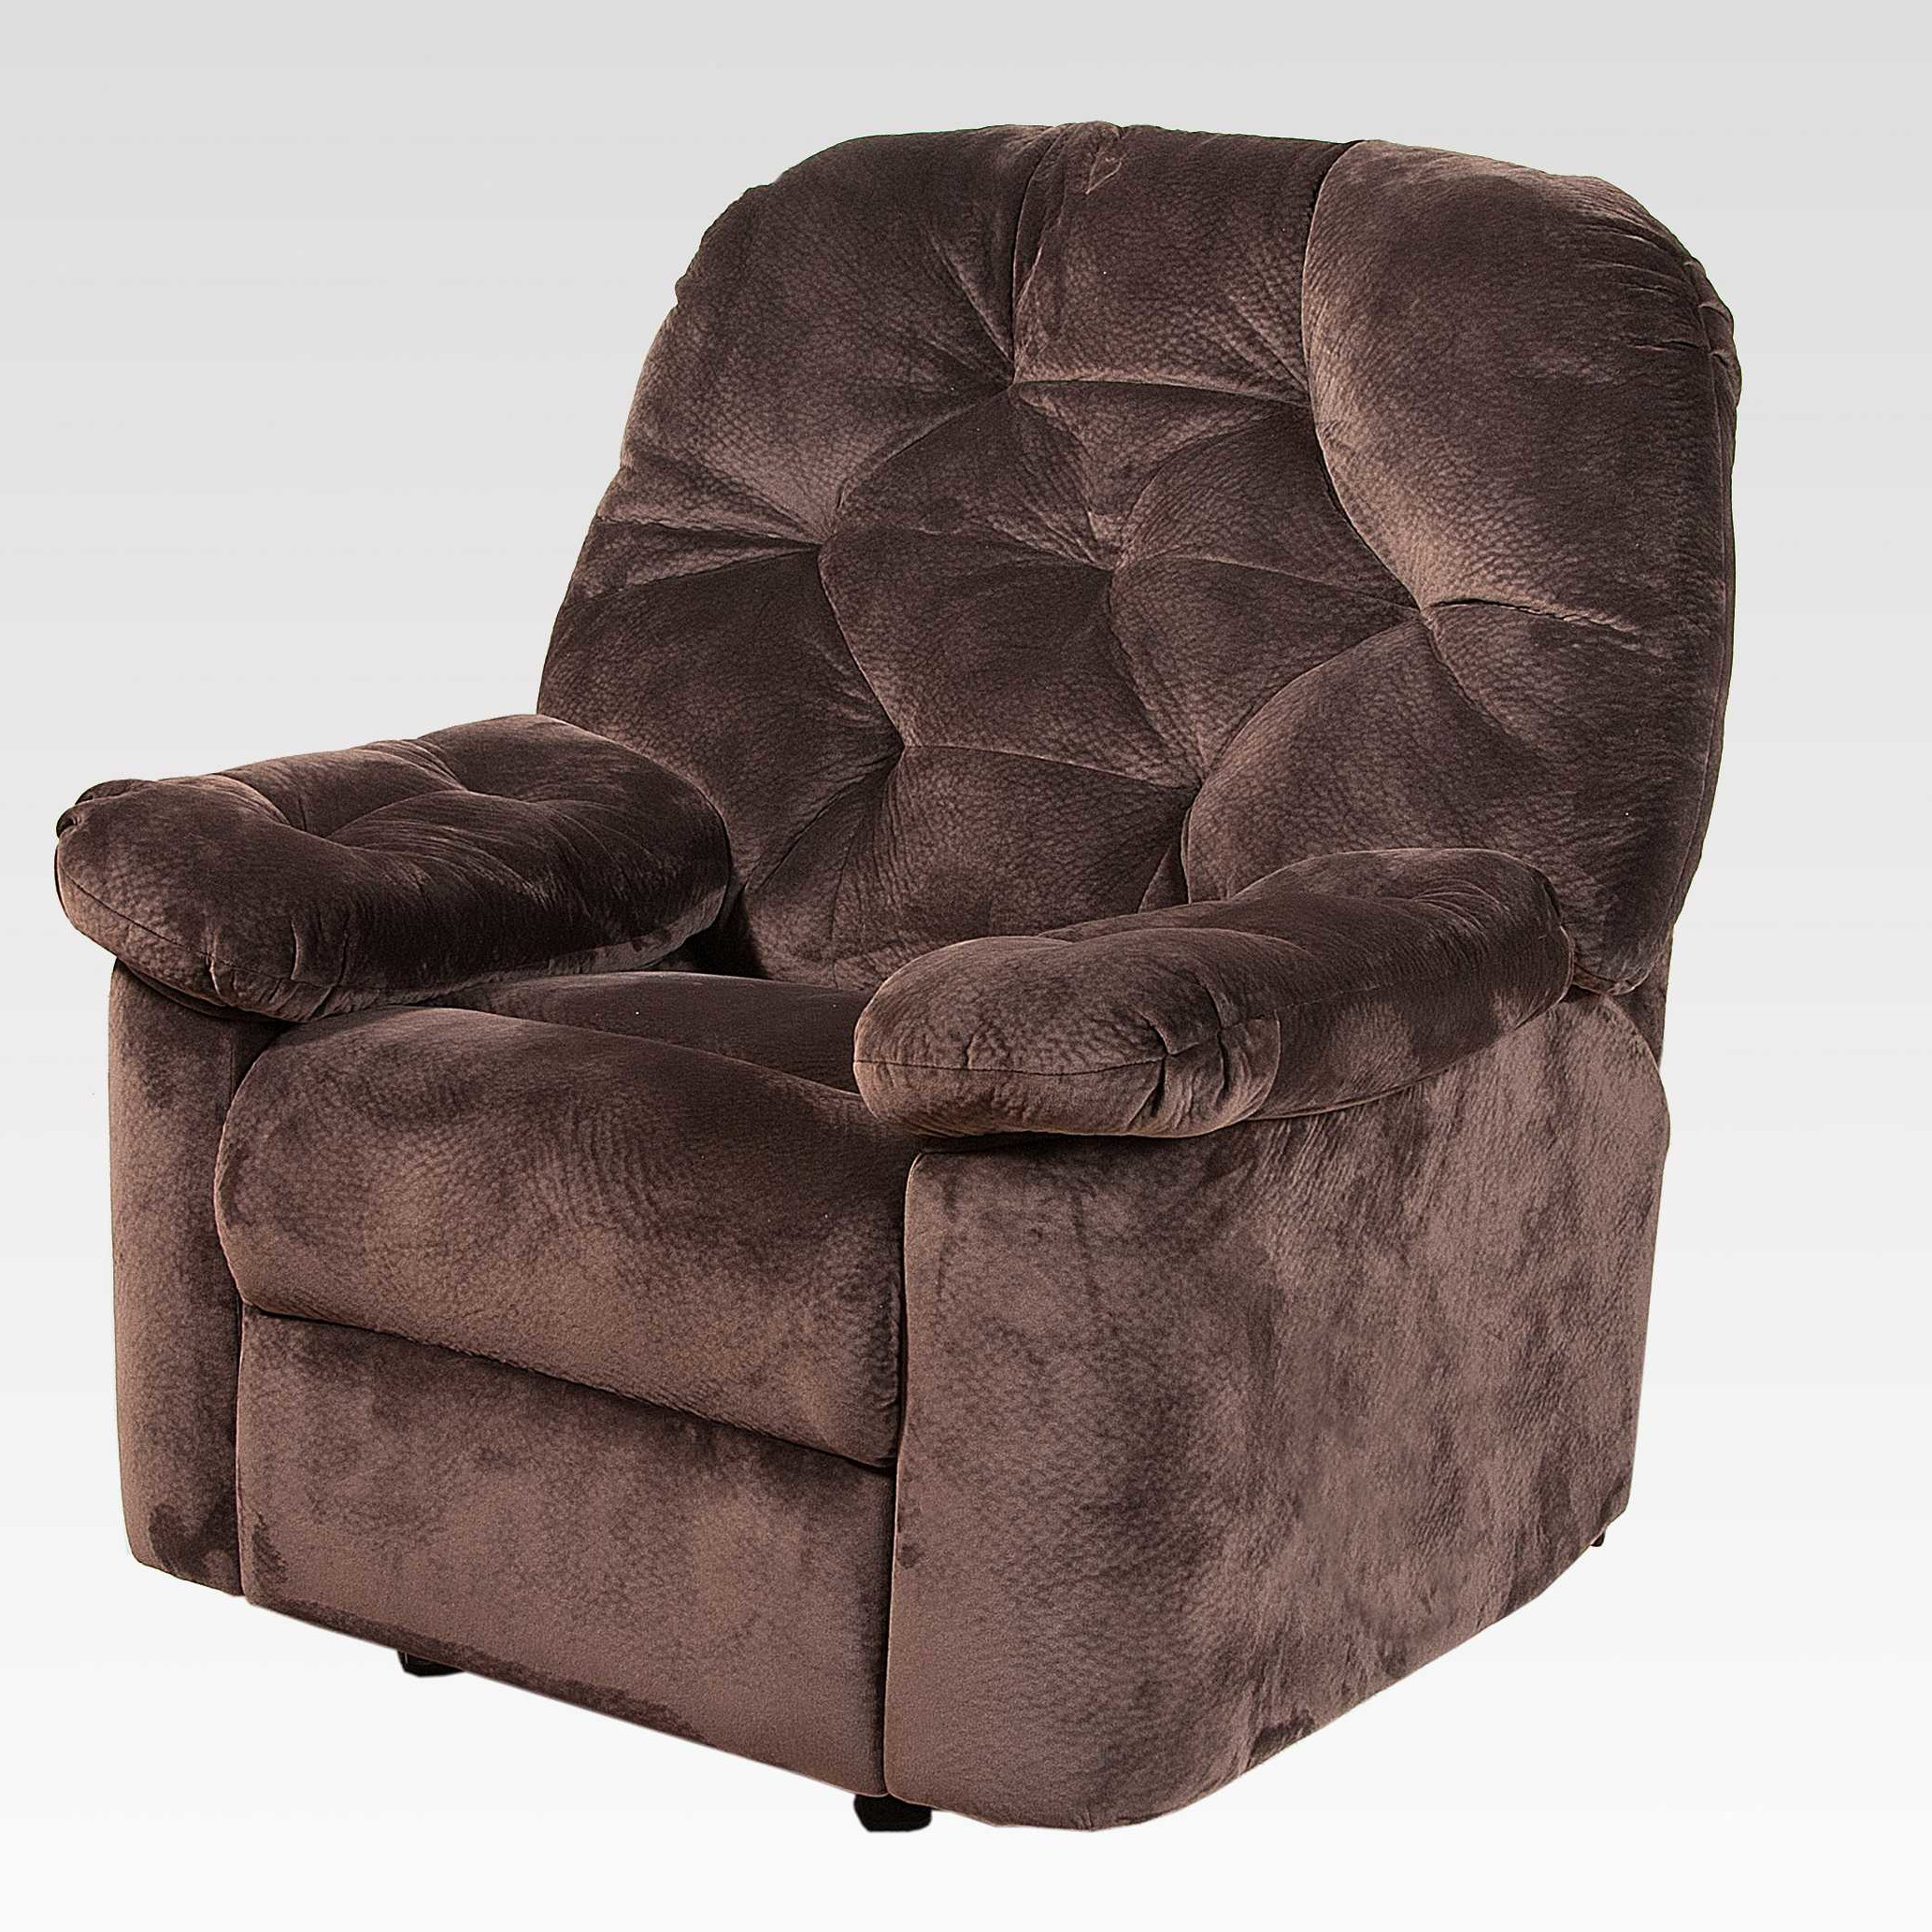 Chair and A Half Slipcover | Recliner Covers | Slipcovers for Recliners